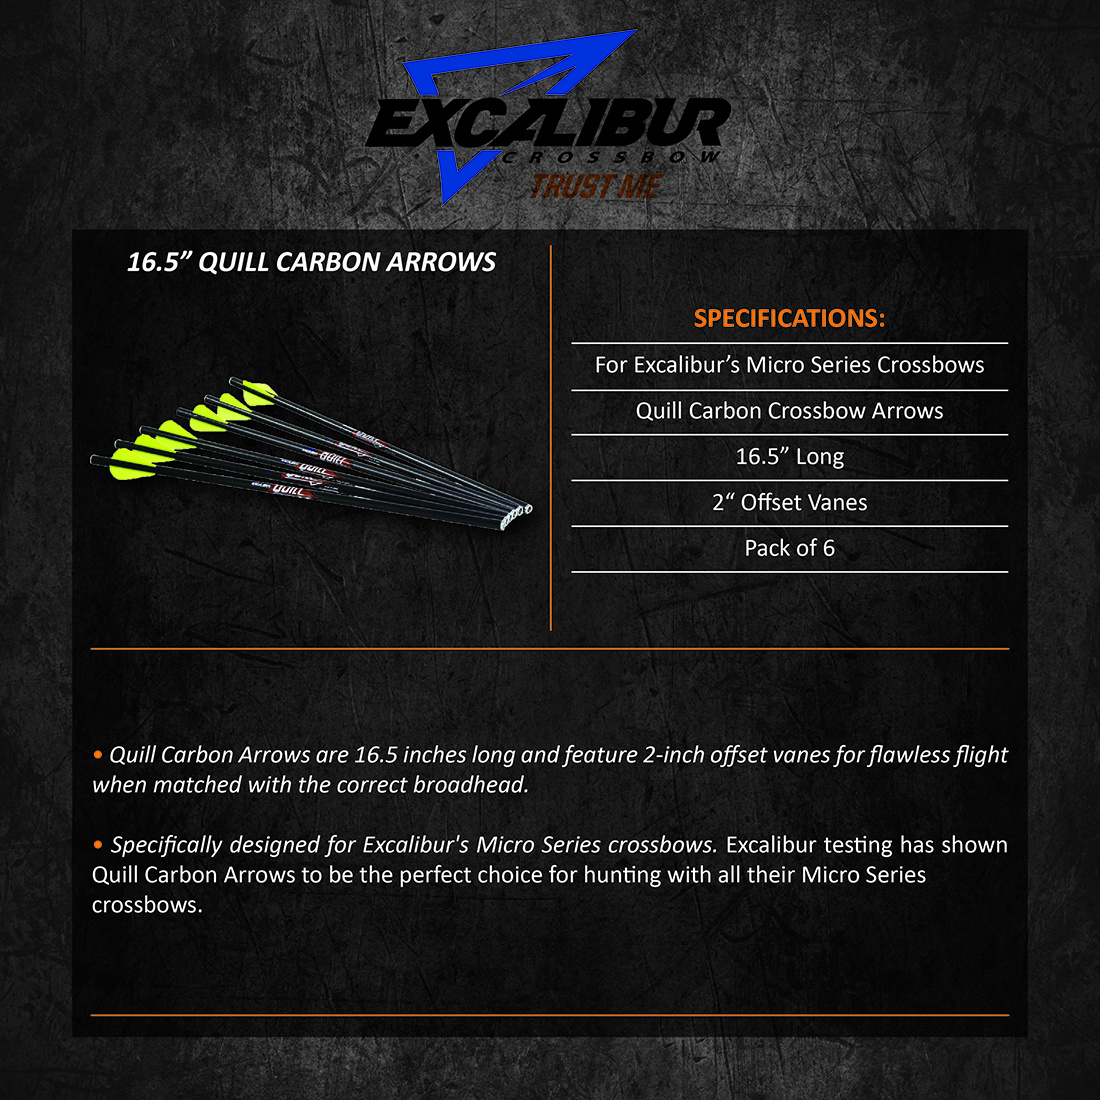 Excalibur_Quill_Carbon_Arrows_6pk16.5in_Product_Description